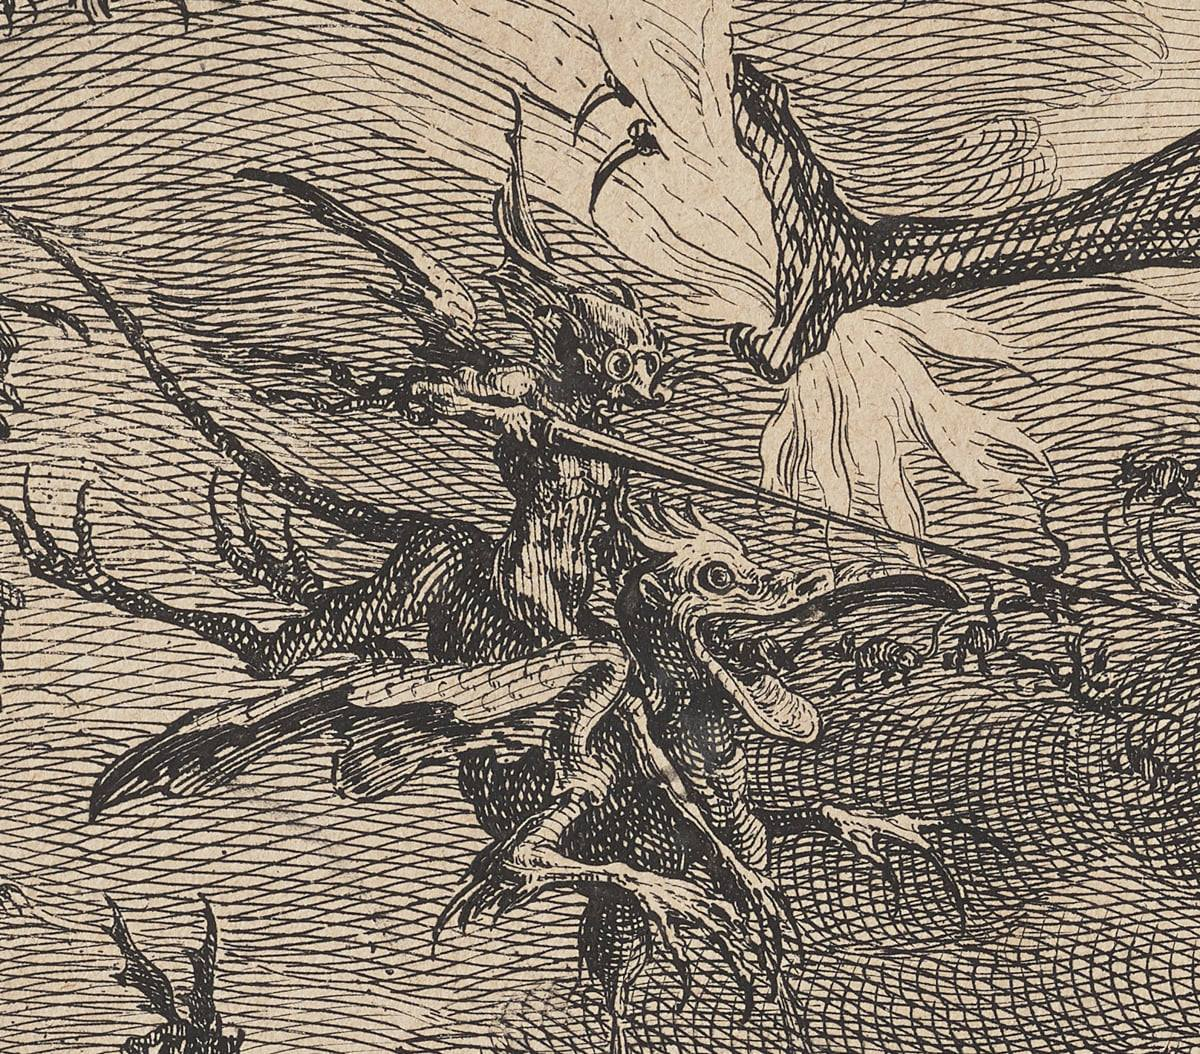 Detail of a spear wielding demon riding a winged four-legged monster. The demon has bat-like wings and a mousey snout and appears to be wearing spectacles. The monster he is riding has a large gaping bill, long claws and a rat-like tail. Above them is the claw of the large center demon clutching fire.